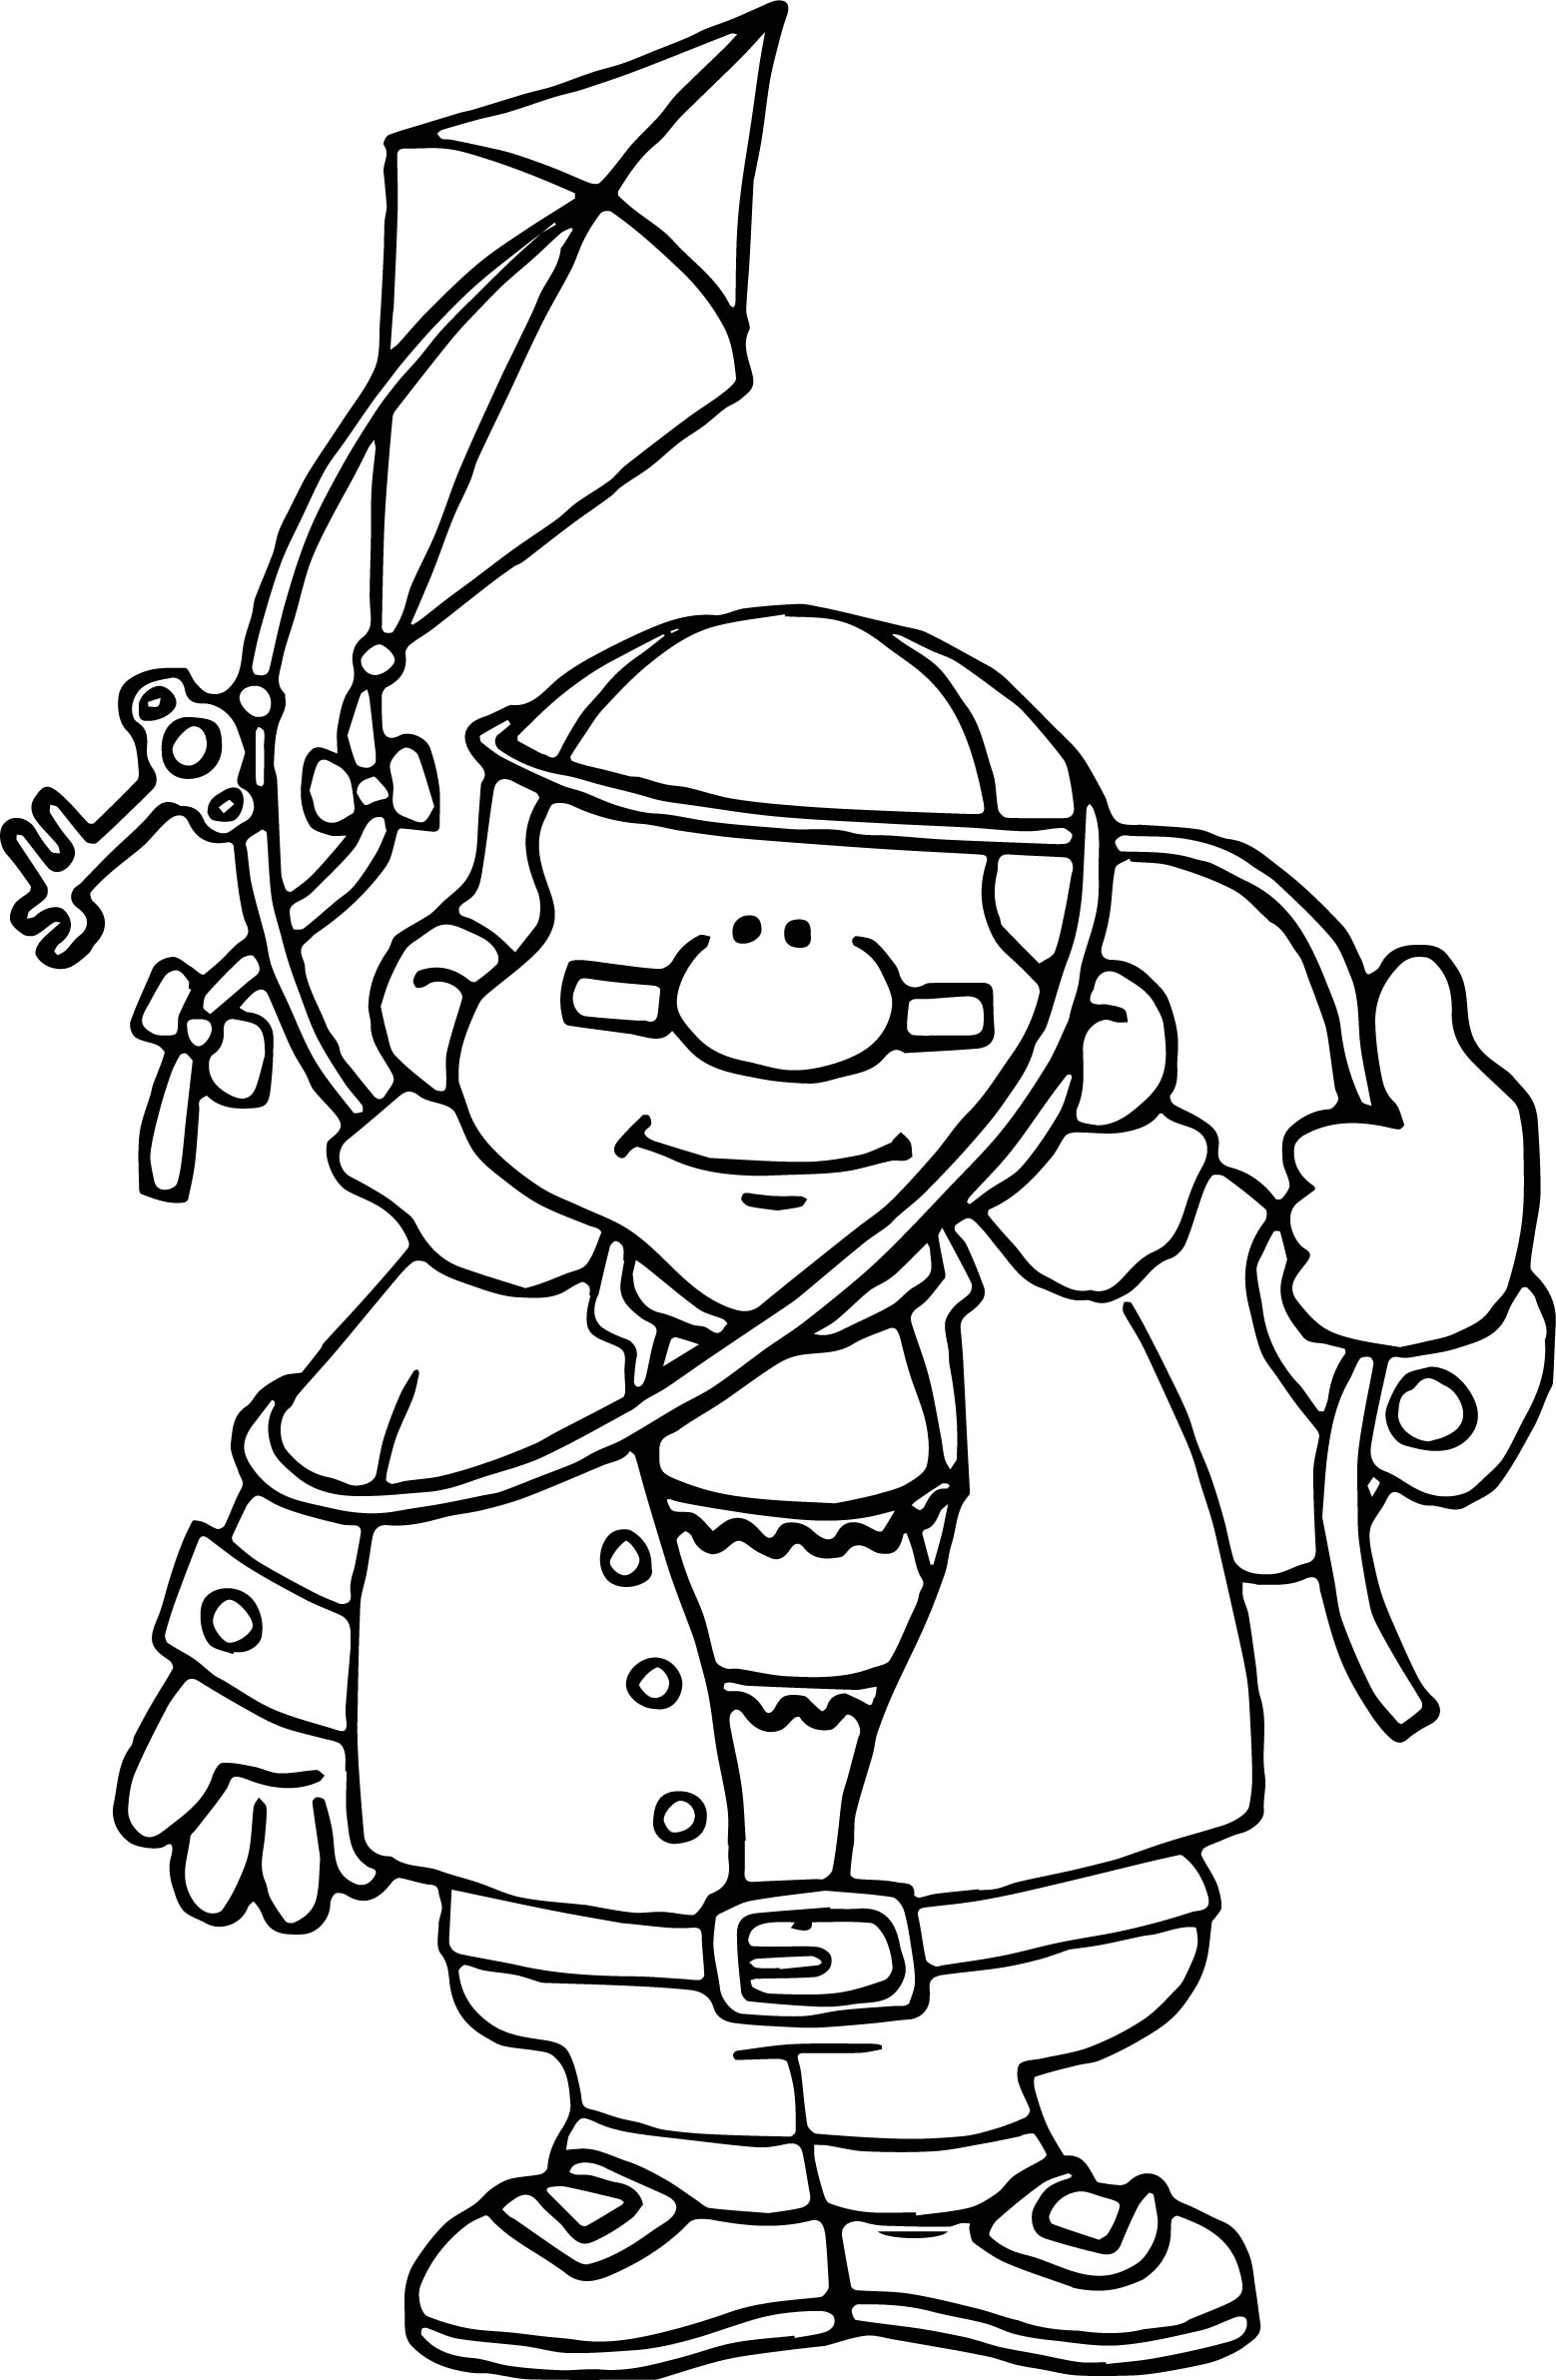 coloring pages ben franklin - photo#22